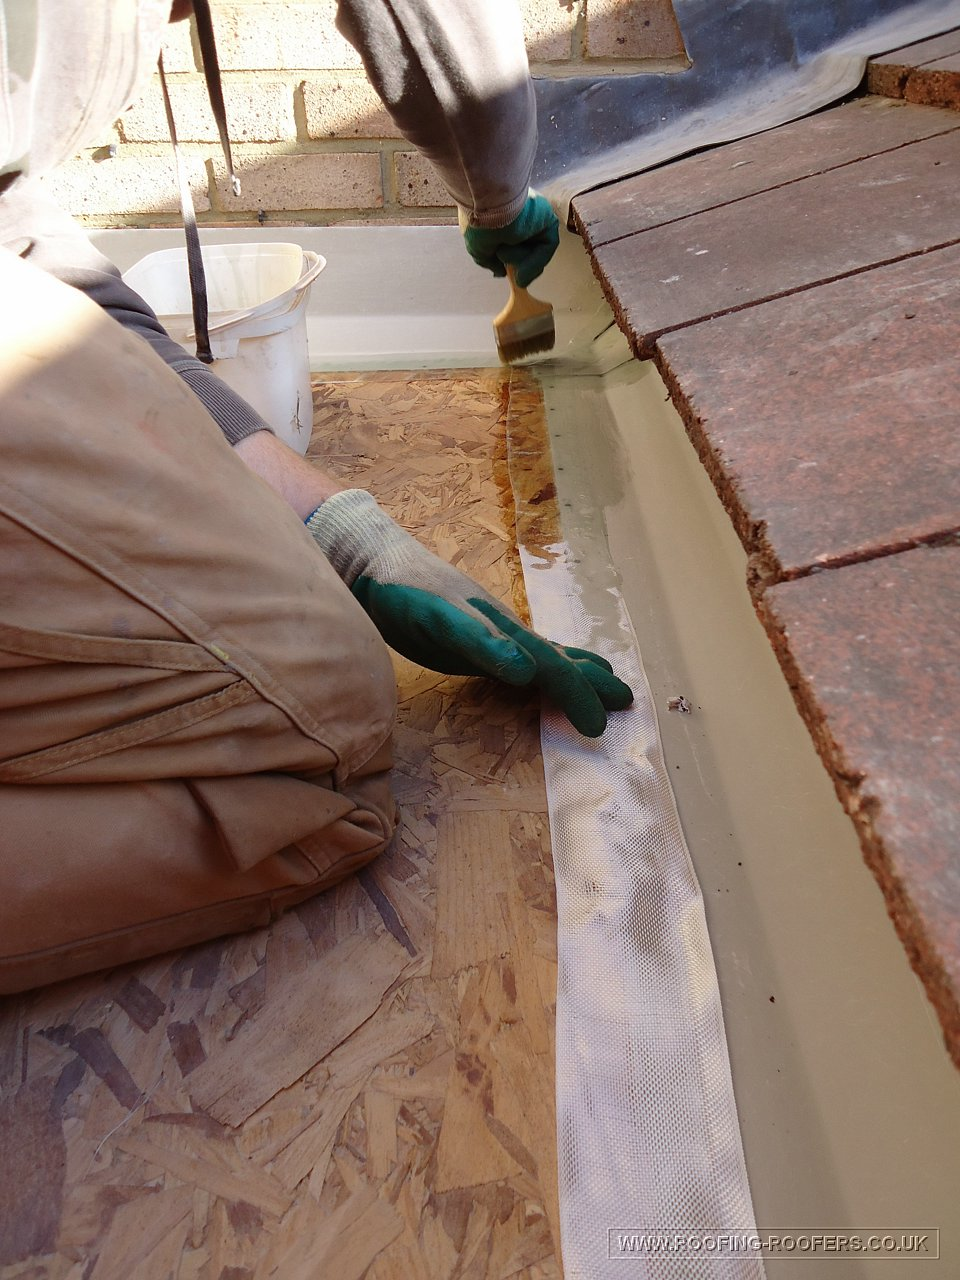 GRP | Roofing and building repairs specialists